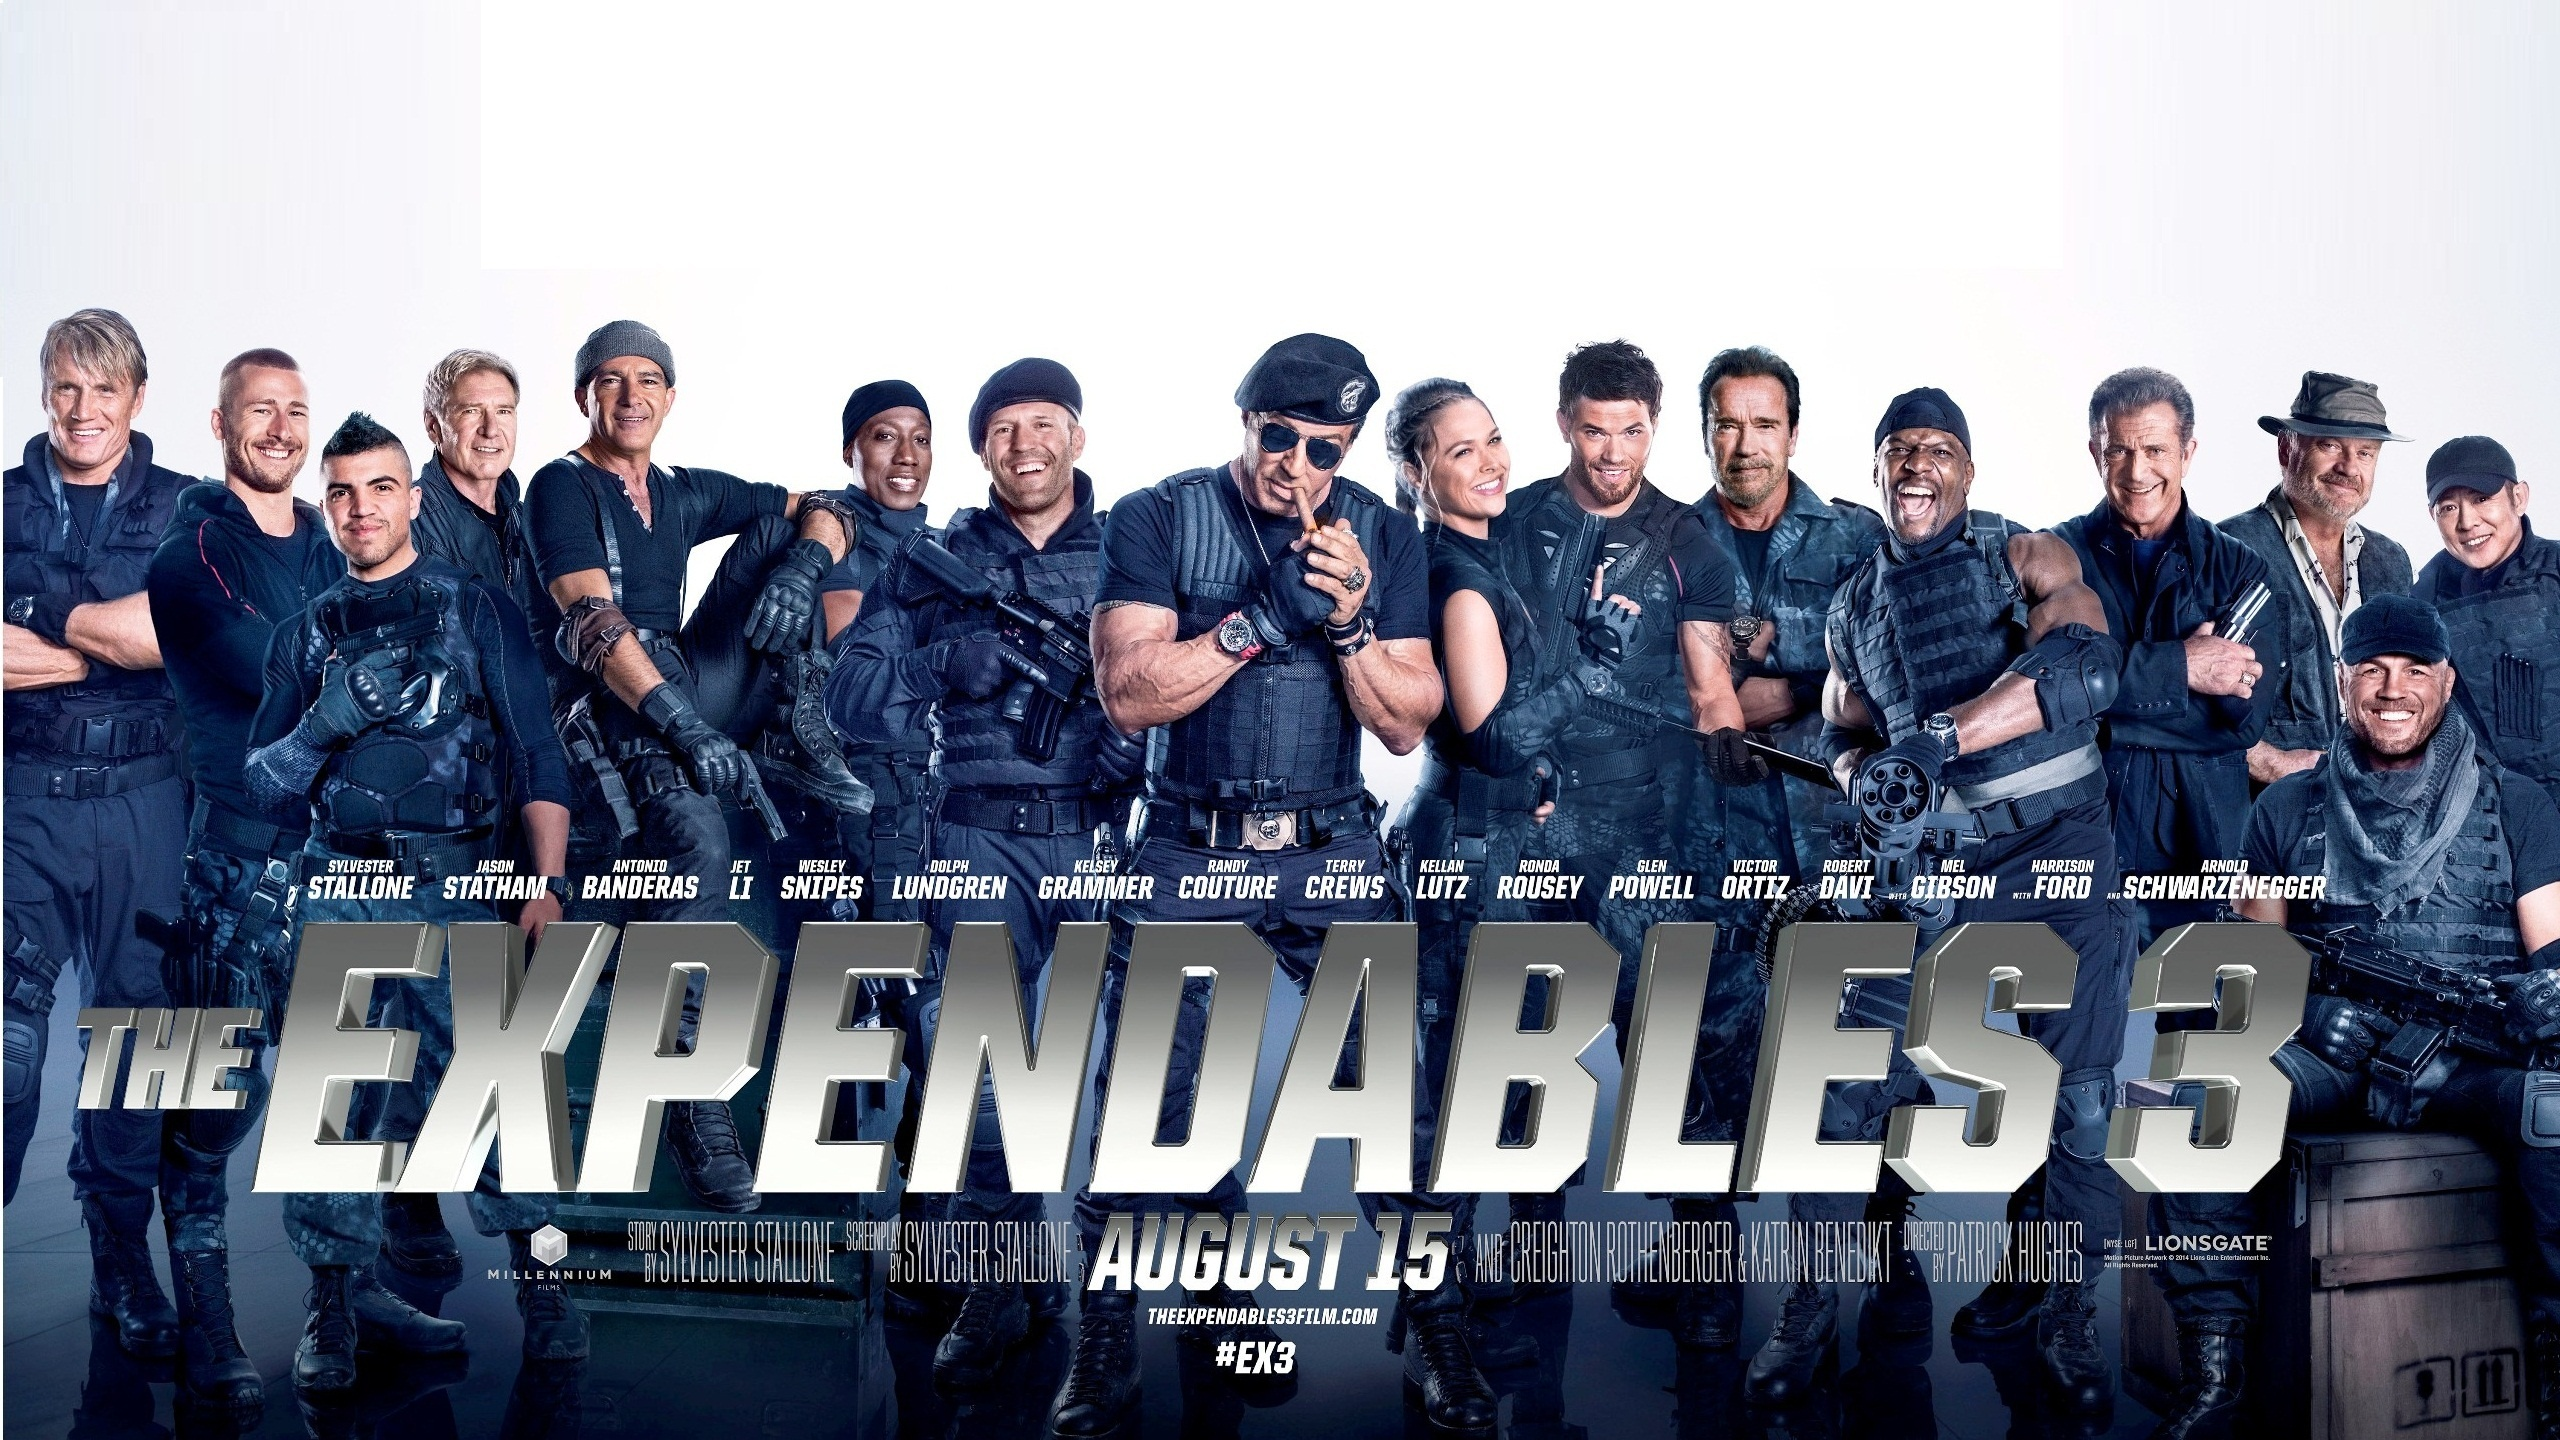 The Expendables 3 2014 Wallpapers - 2560x1440 - 1311891